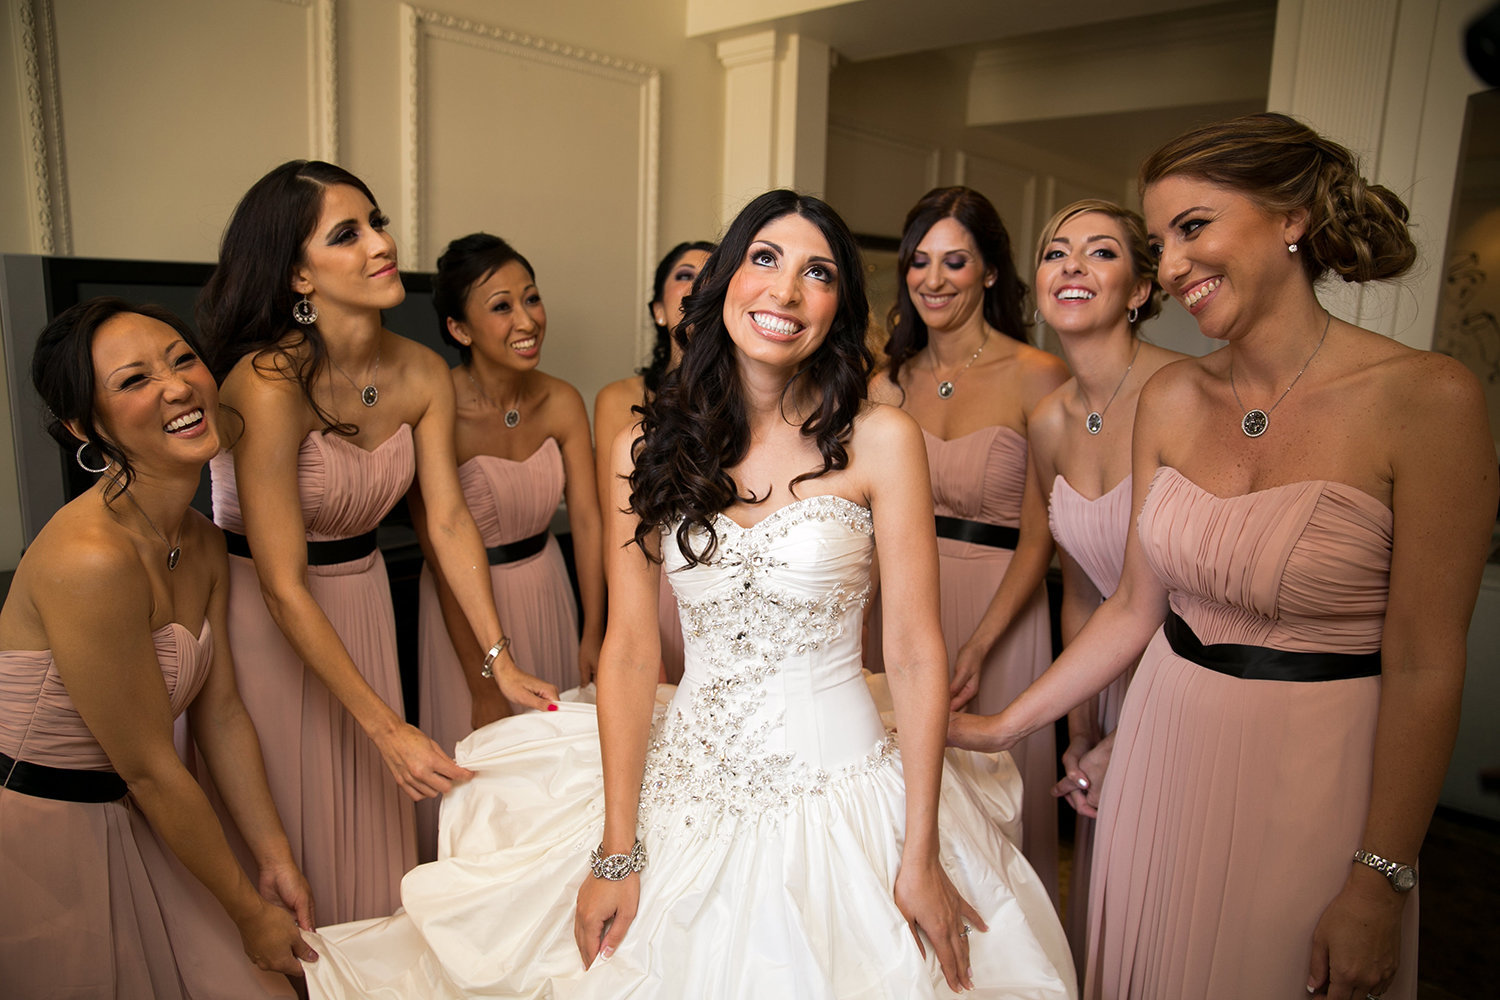 Great natural moment photo of bride and bridesmaids getting ready at a wedding